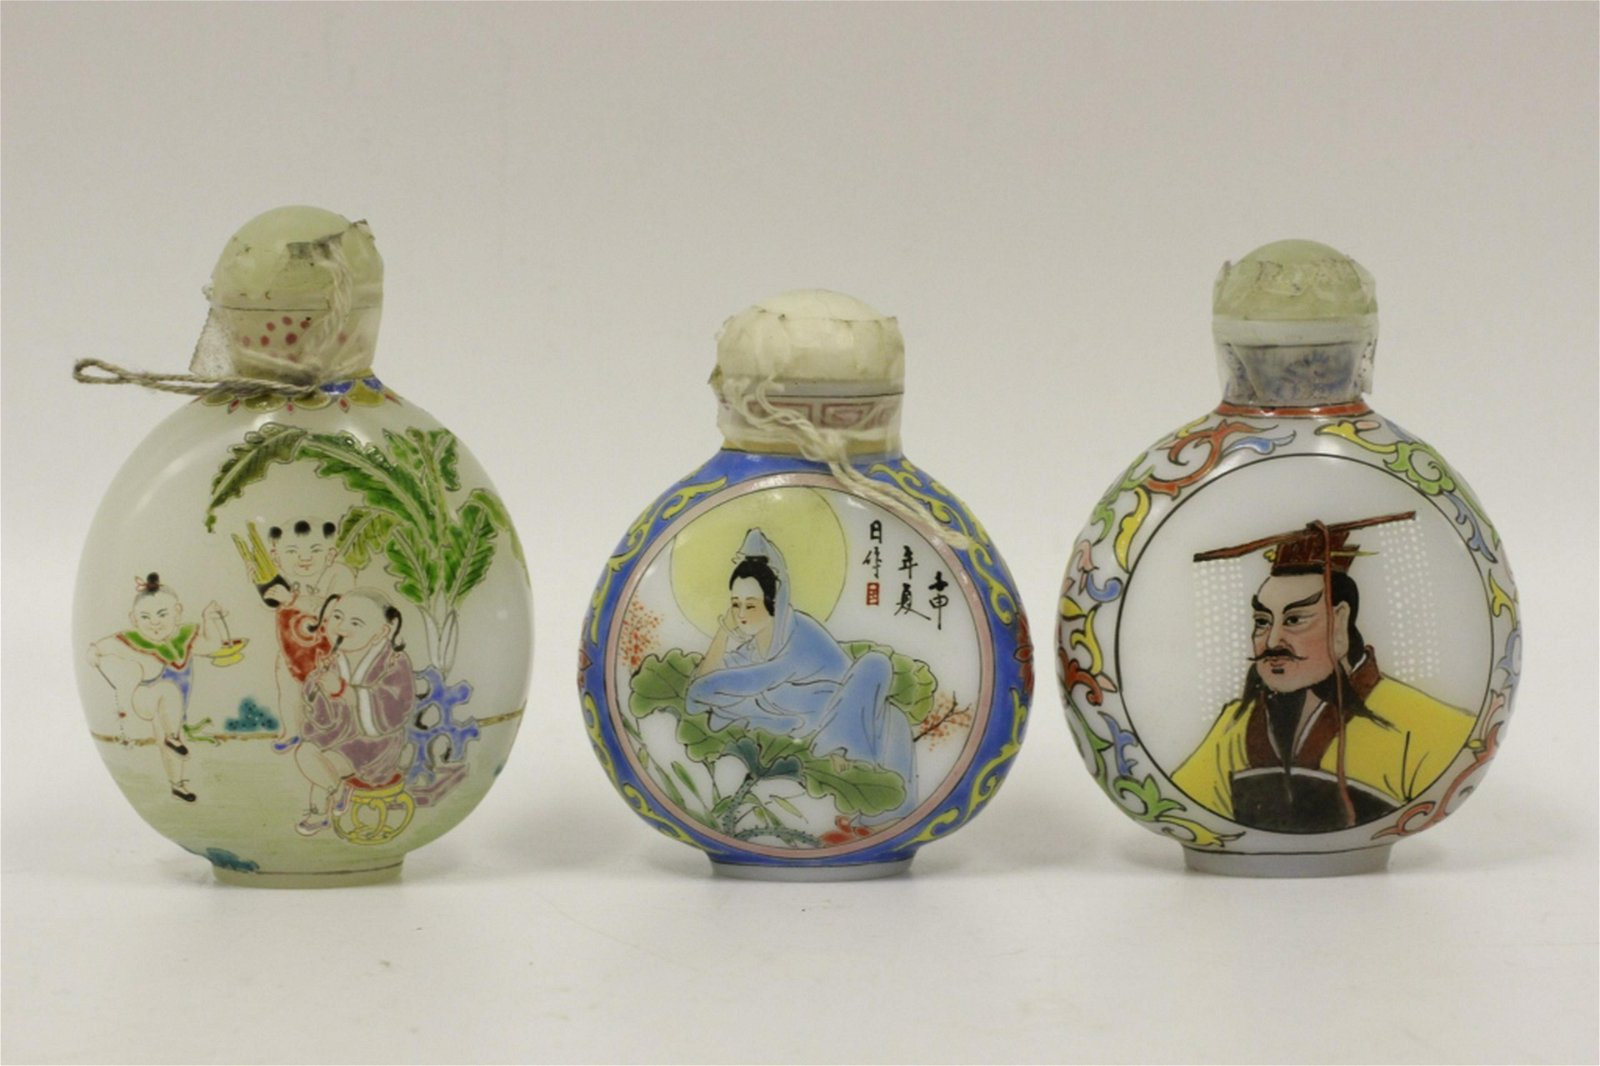 Chinese Lot of 3 Old Enameled Glass Snuff Bottles